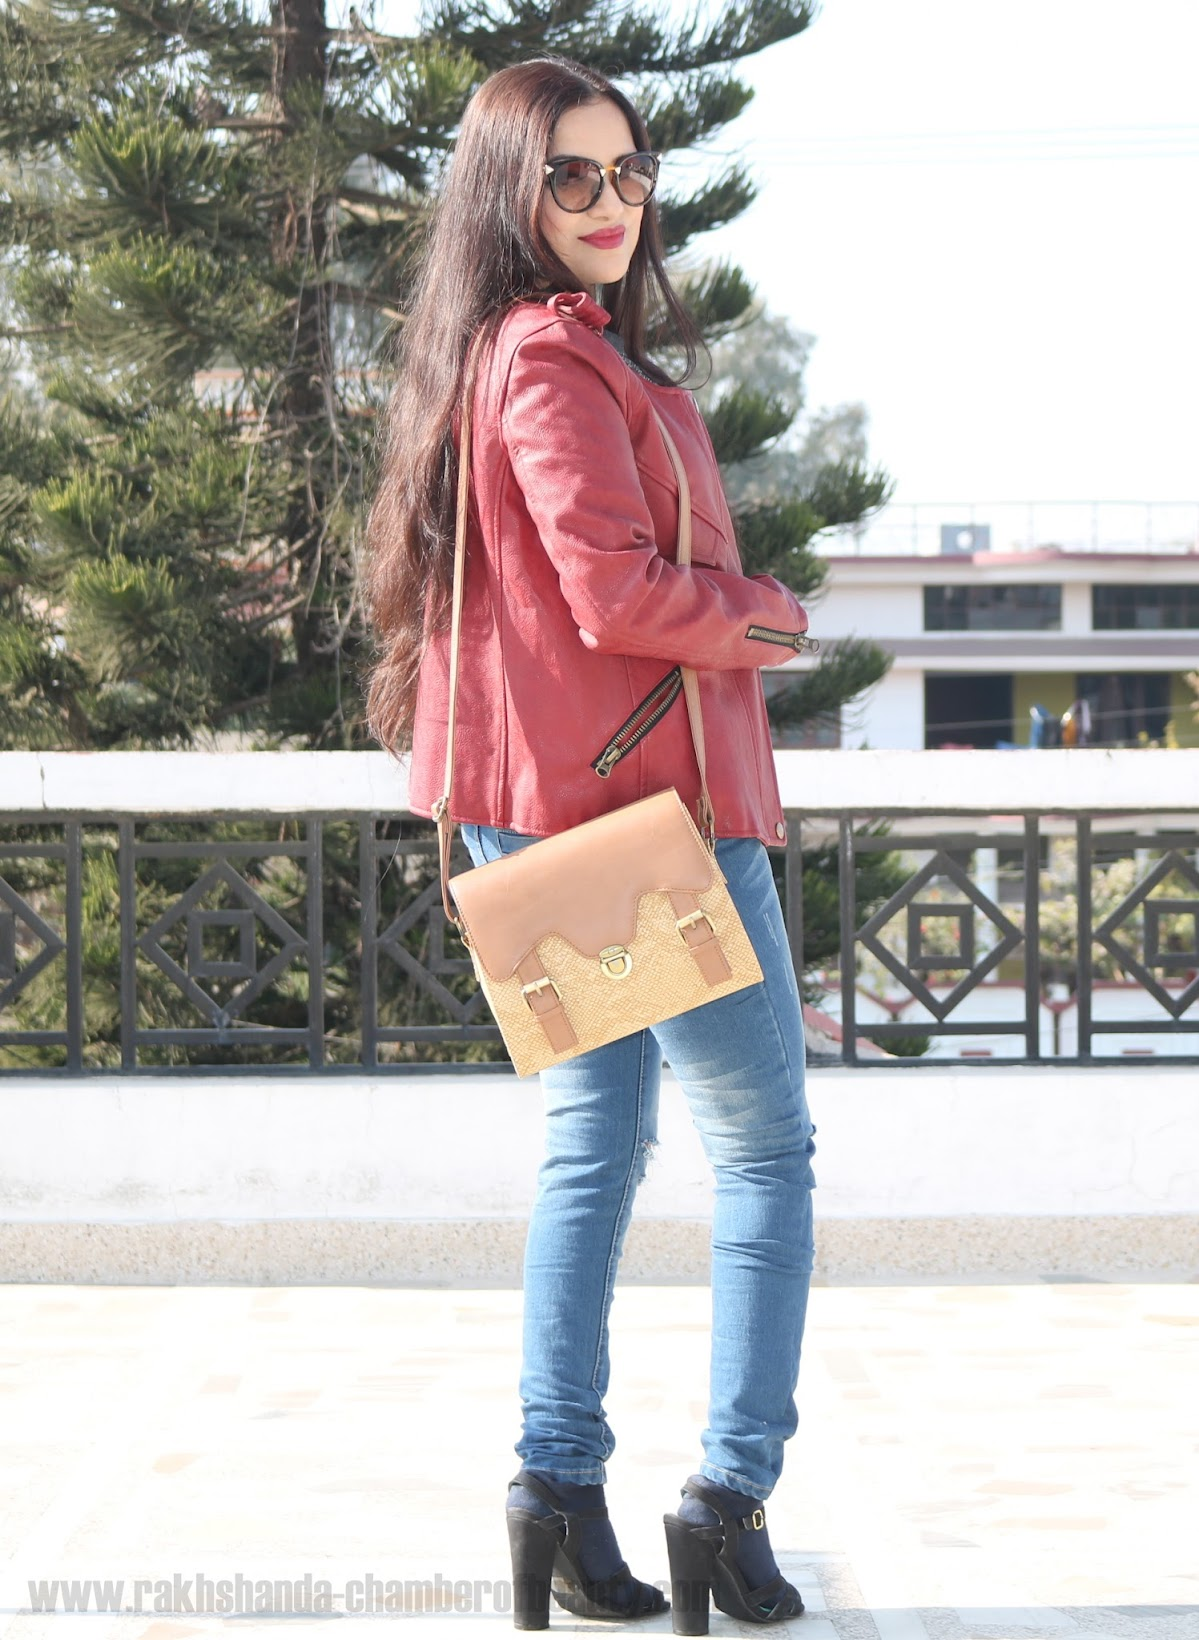 fashion, Front Row Shop, Indian fashion blogger, leather jacket, OOTD, styling a leather jacket, Vero Moda, winter fashion, Chamber Of Beauty, top fashion blog in India, how to style a burgundy leather jacket, ripped jeans